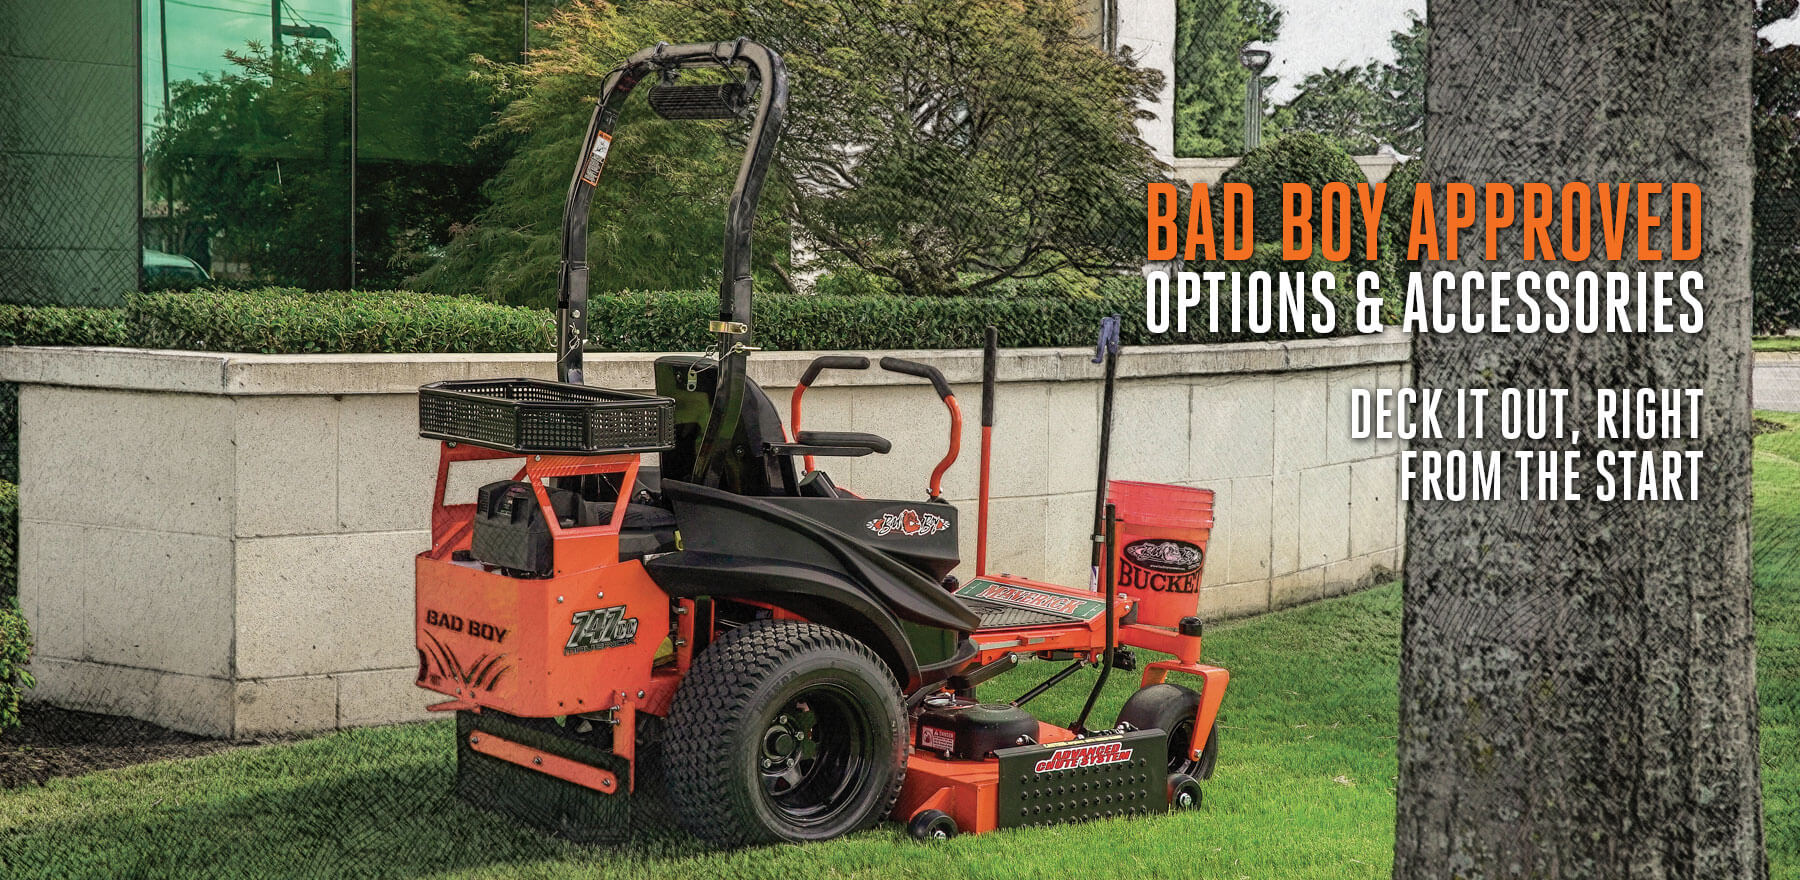 hight resolution of lawn mower accessories for tilling aerating mulching more bad boy mowers